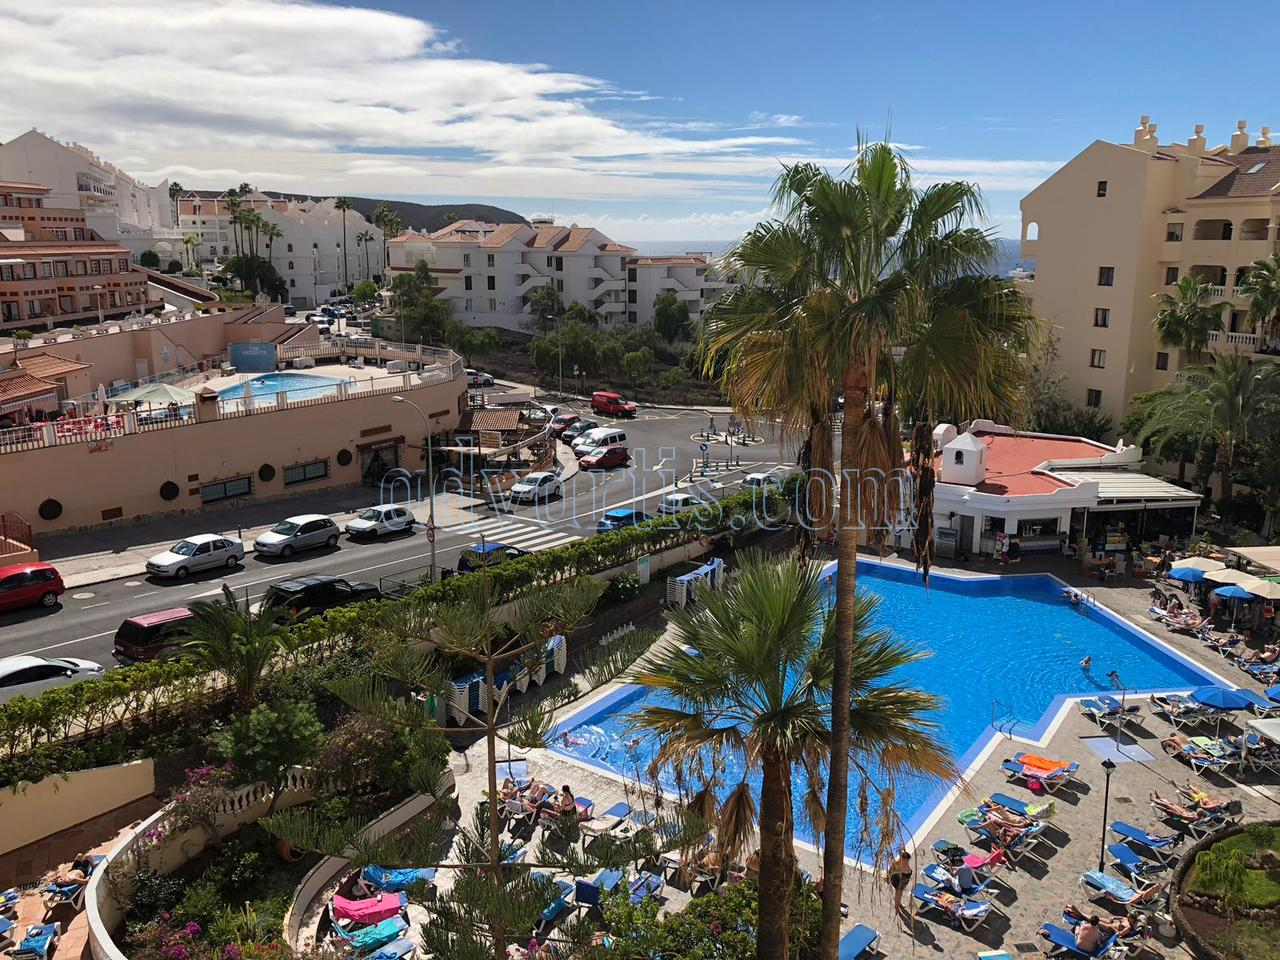 2 bedroom apartment for sale in Castle Harbour, Los Cristianos, Tenerife €237.000